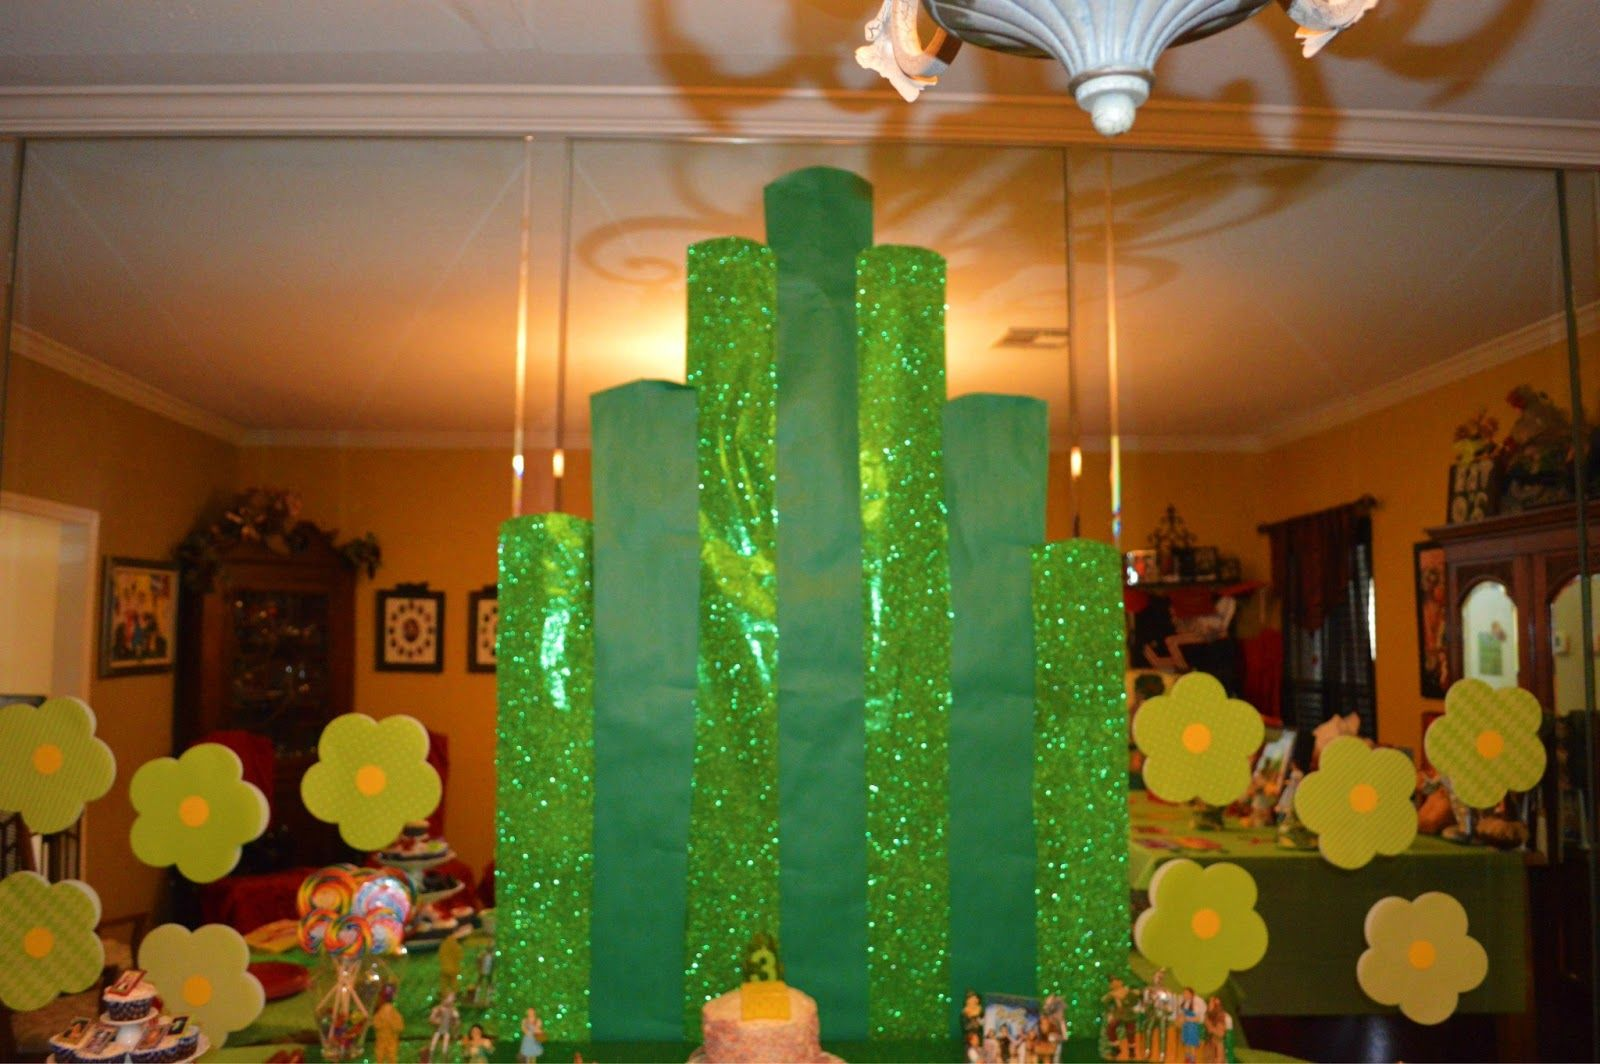 Wizard Of Oz Party Decorations The Keierleber Family Wizard Of Oz Party Food And Decor